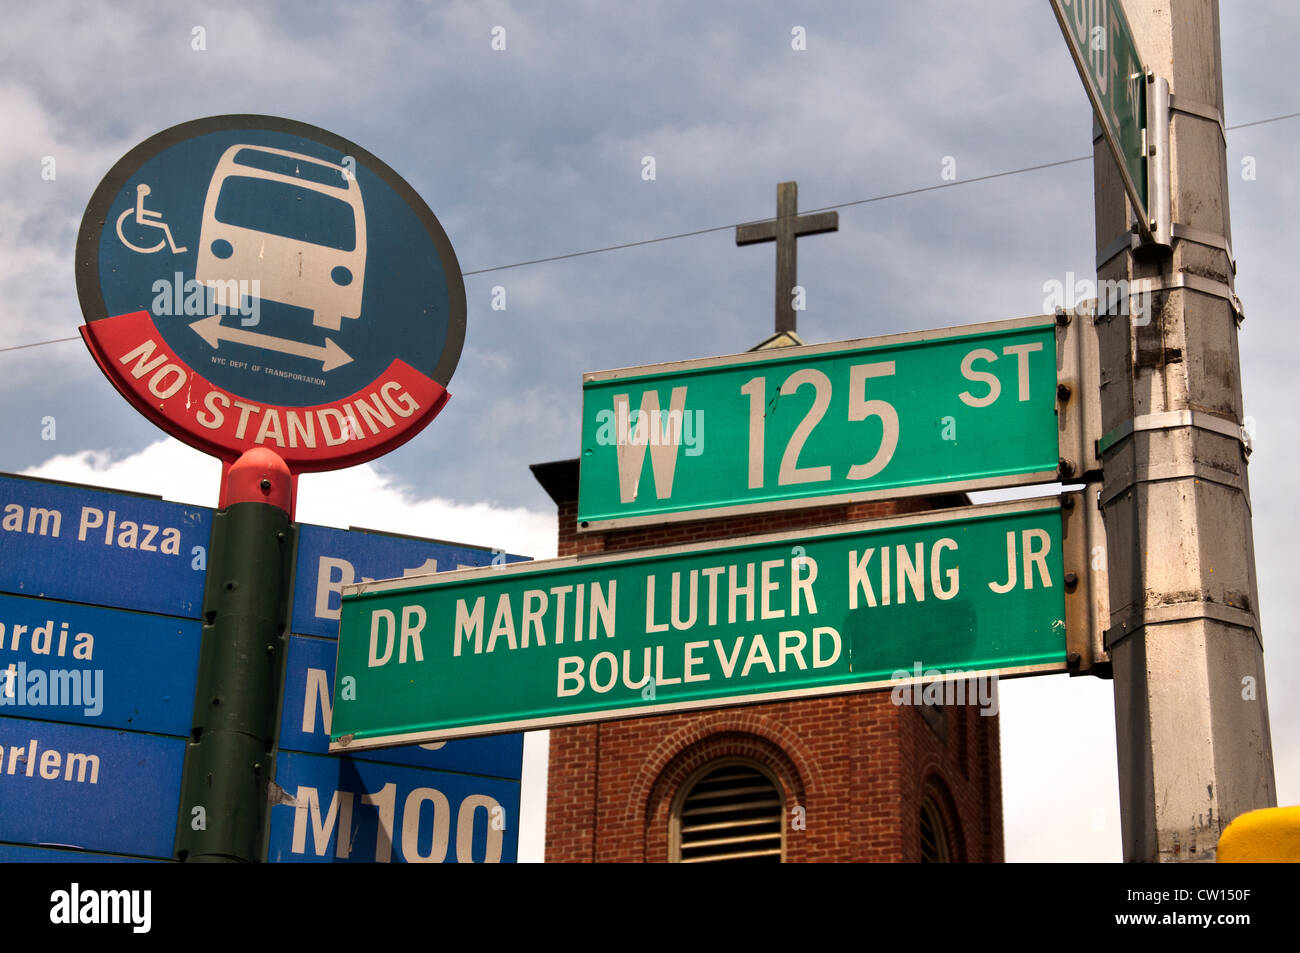 Dr Martin Luther King JR Boulevard Harlem New York  Manhattan United States - Stock Image